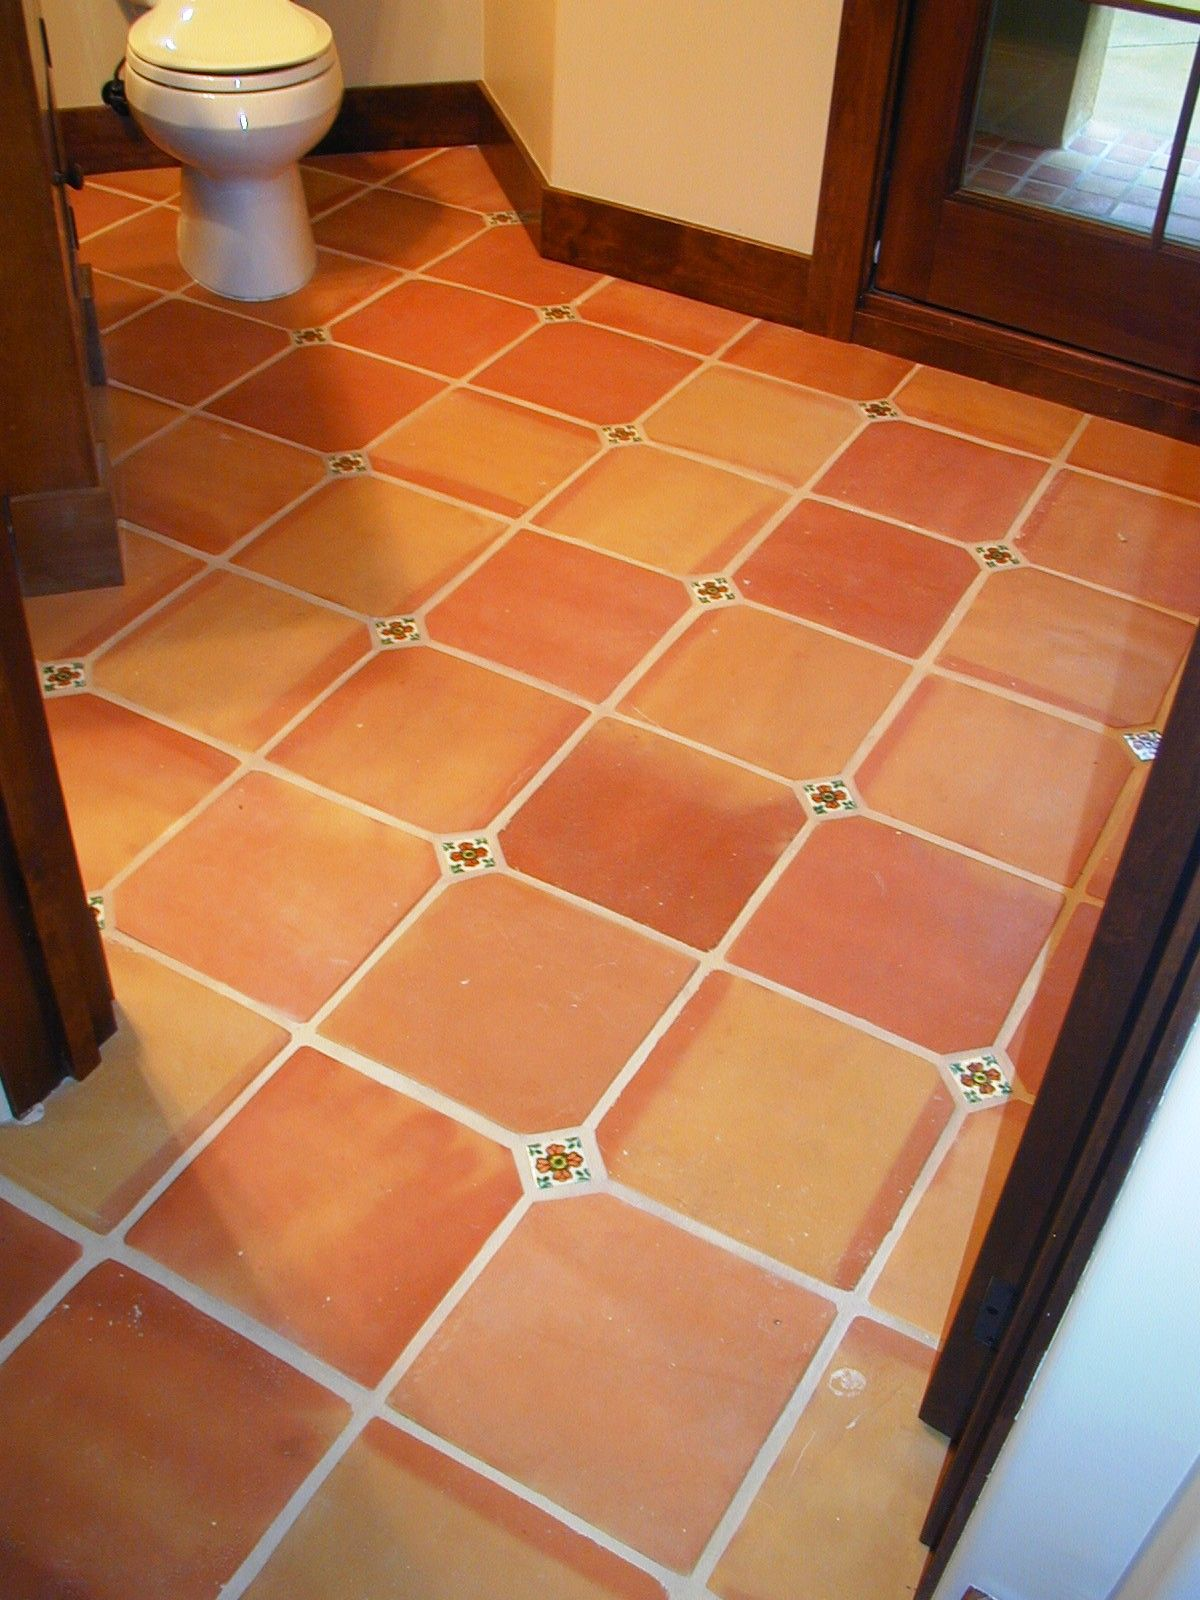 12x12 Traditional Terra Cotta Tiles with a 2x2 insert cut on site. Amazing  natural color